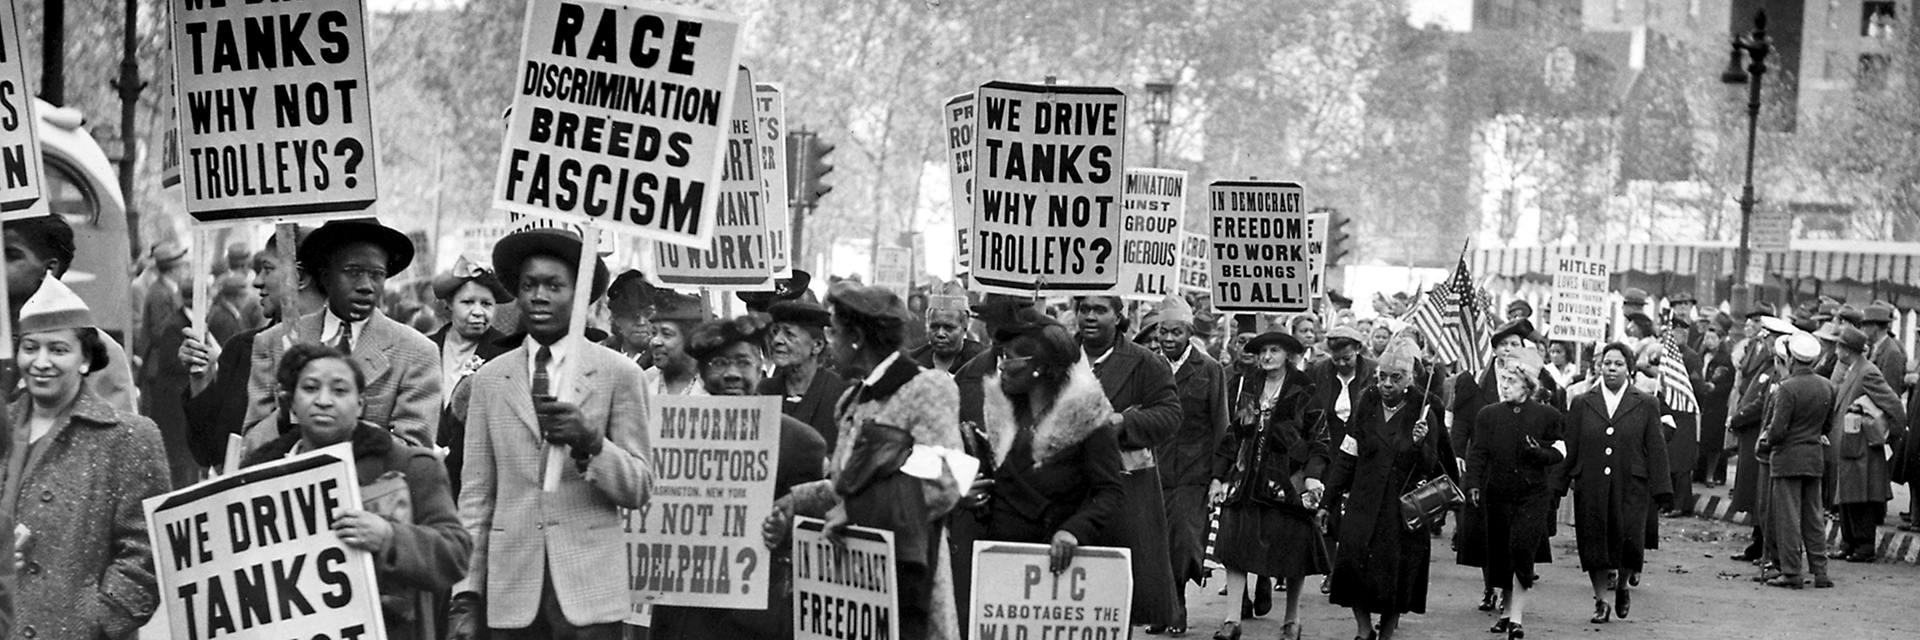 PTC Protest, November 8, 1943, 1943. (John W. Mosley Photograph Collection, Charles L. Blockson Afro-American Collection, Temple University Libraries, Philadelphia, PA.)